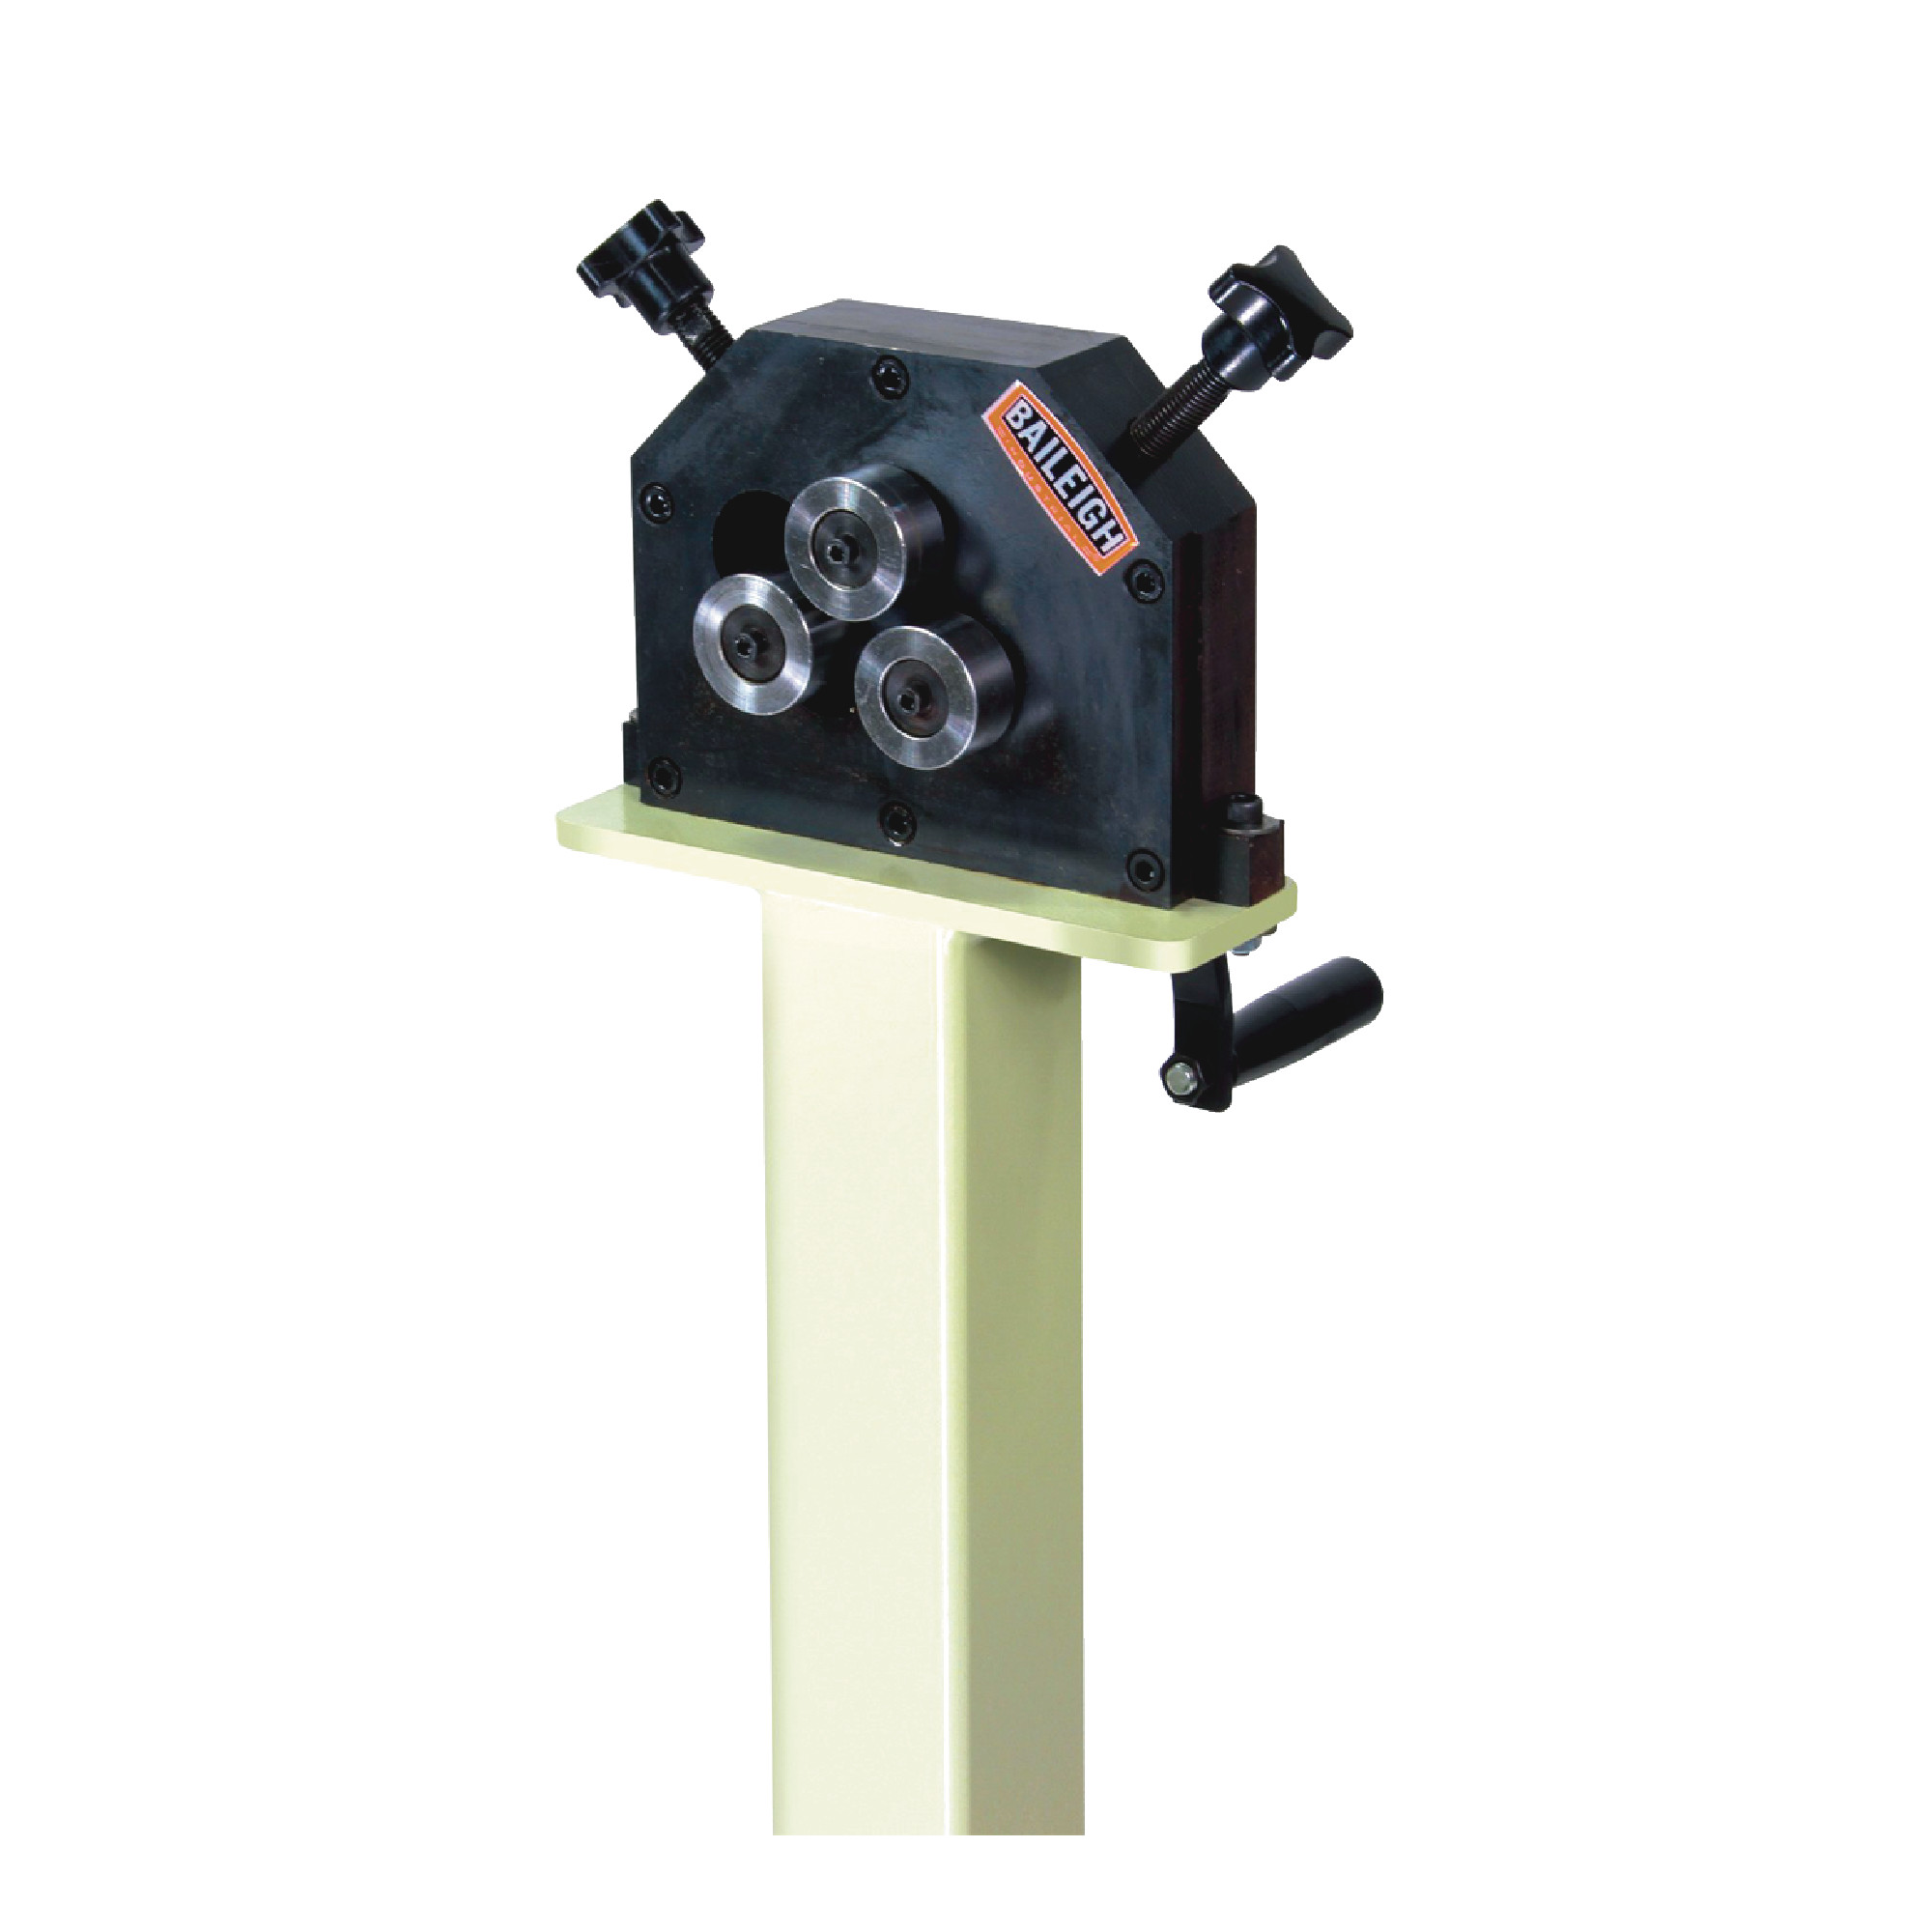 Manual Compact & Portable Roll Bender